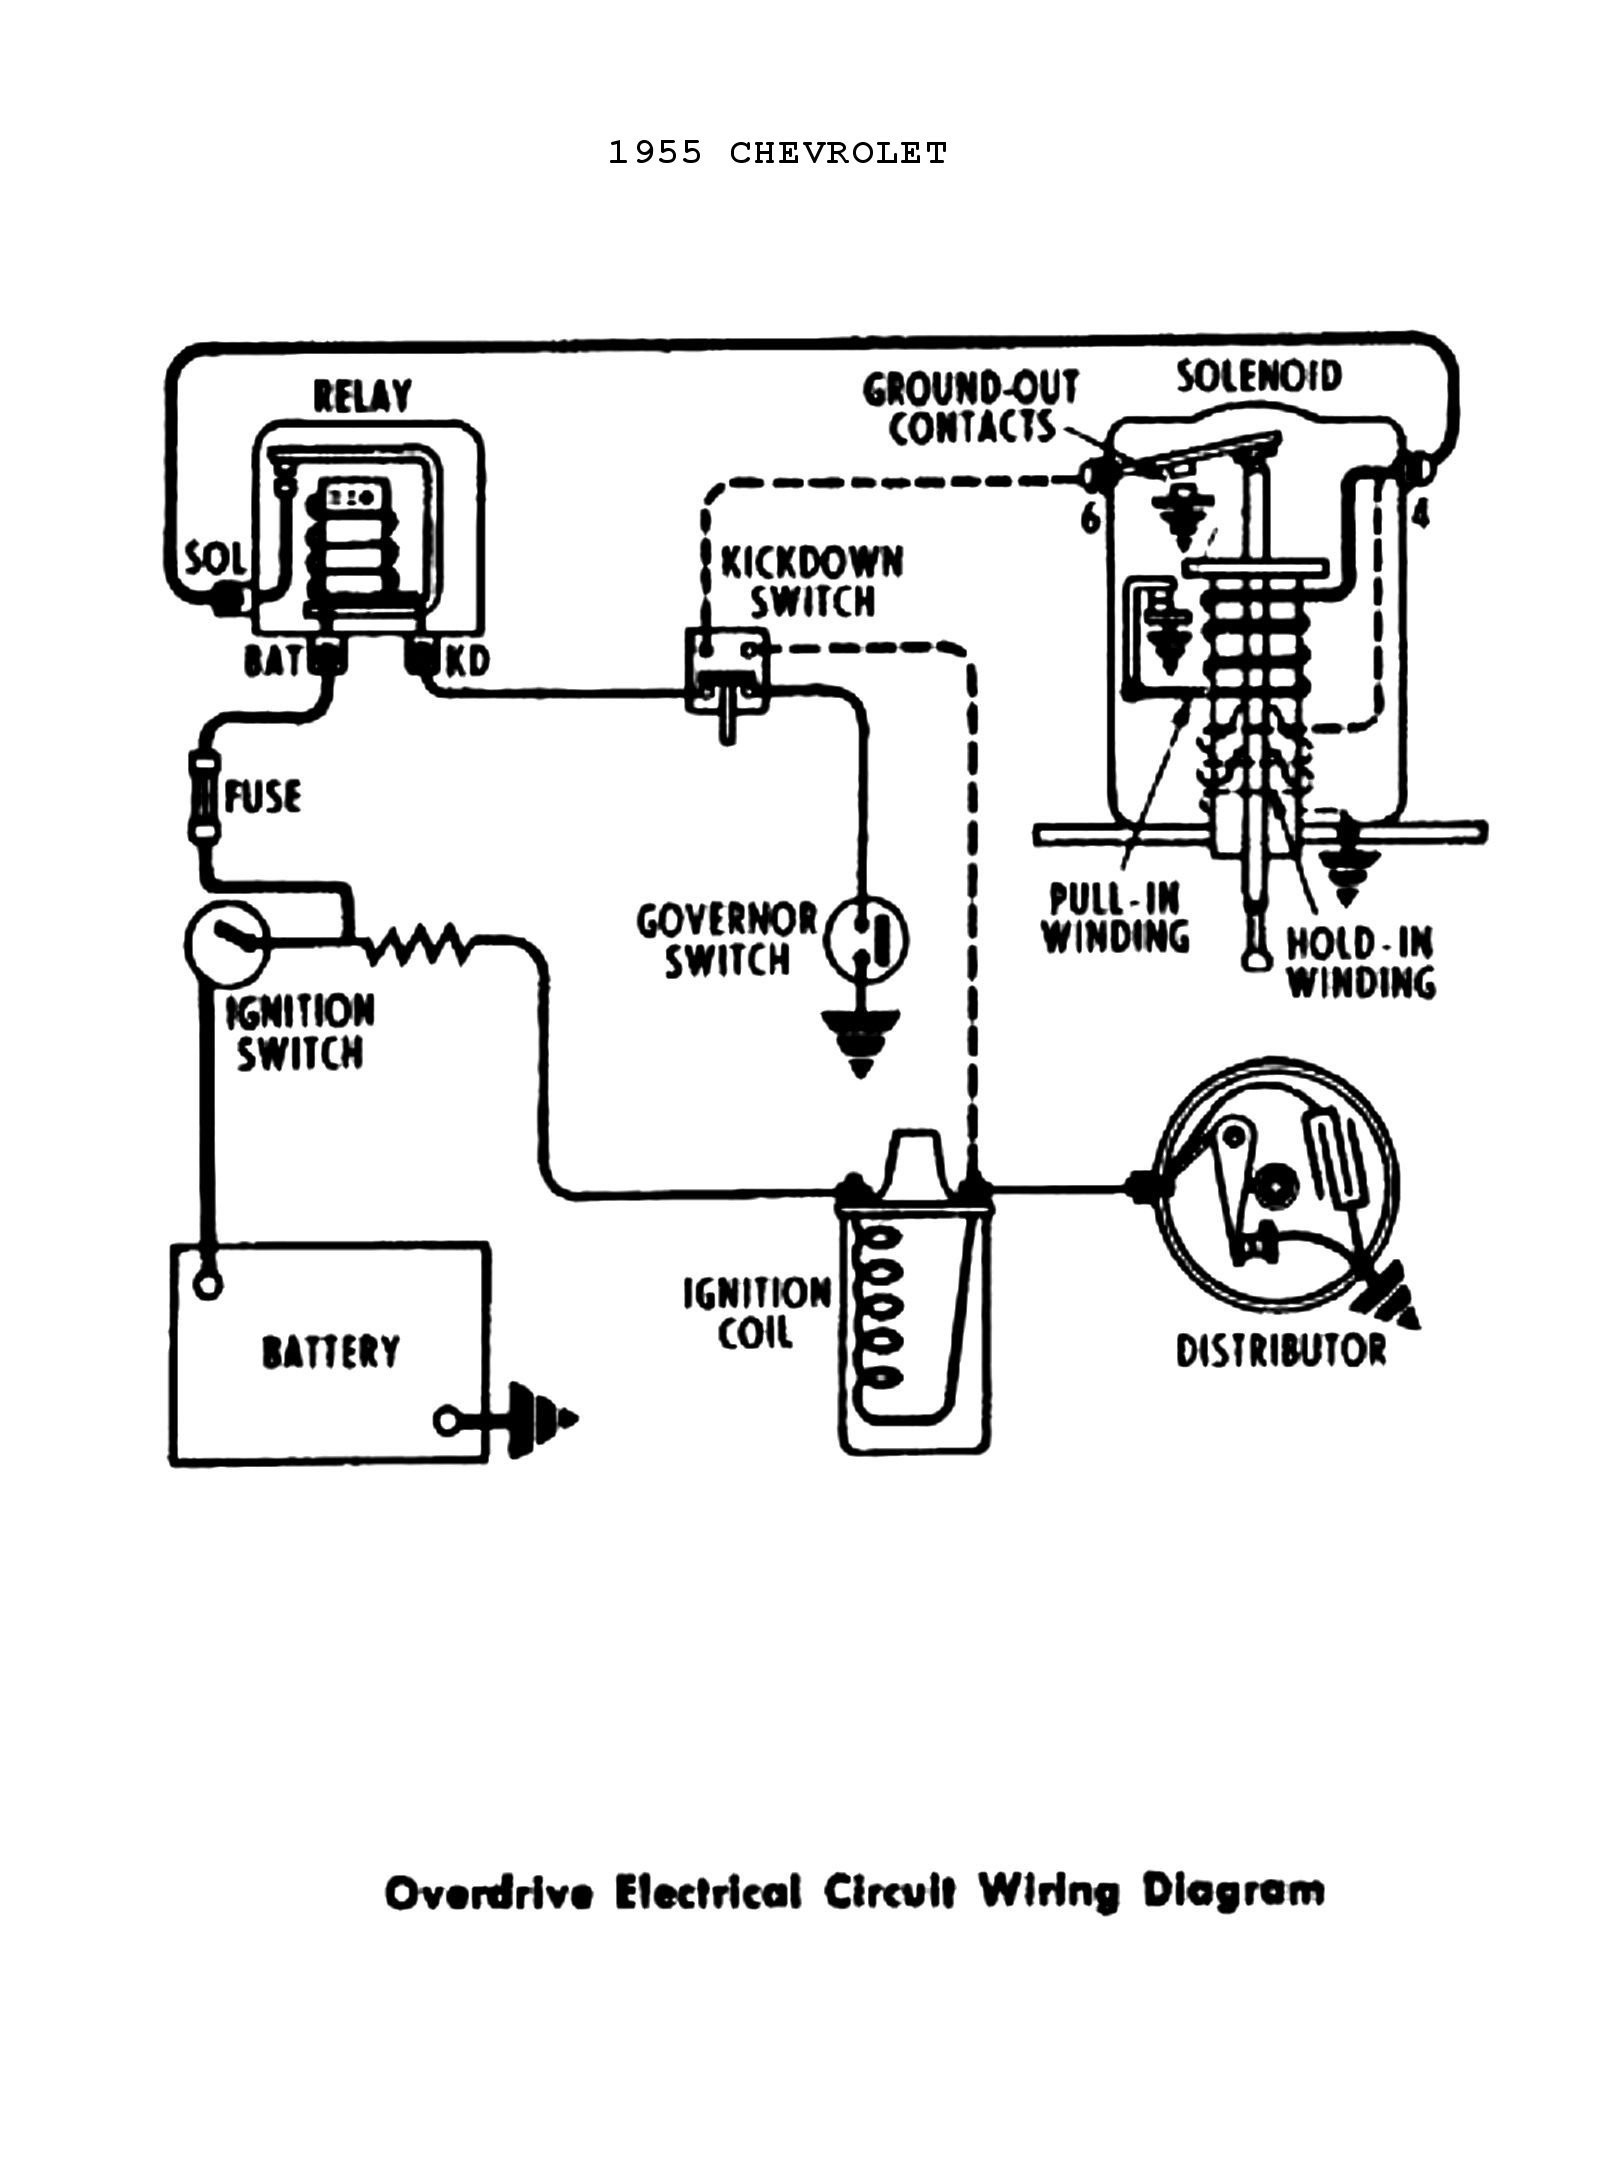 gm alternator wiring schematic Collection-Wiring Diagram for Gm Light Switch Best Wiring Diagram for Alternator Warning Light New Wiring Diagram 6-q